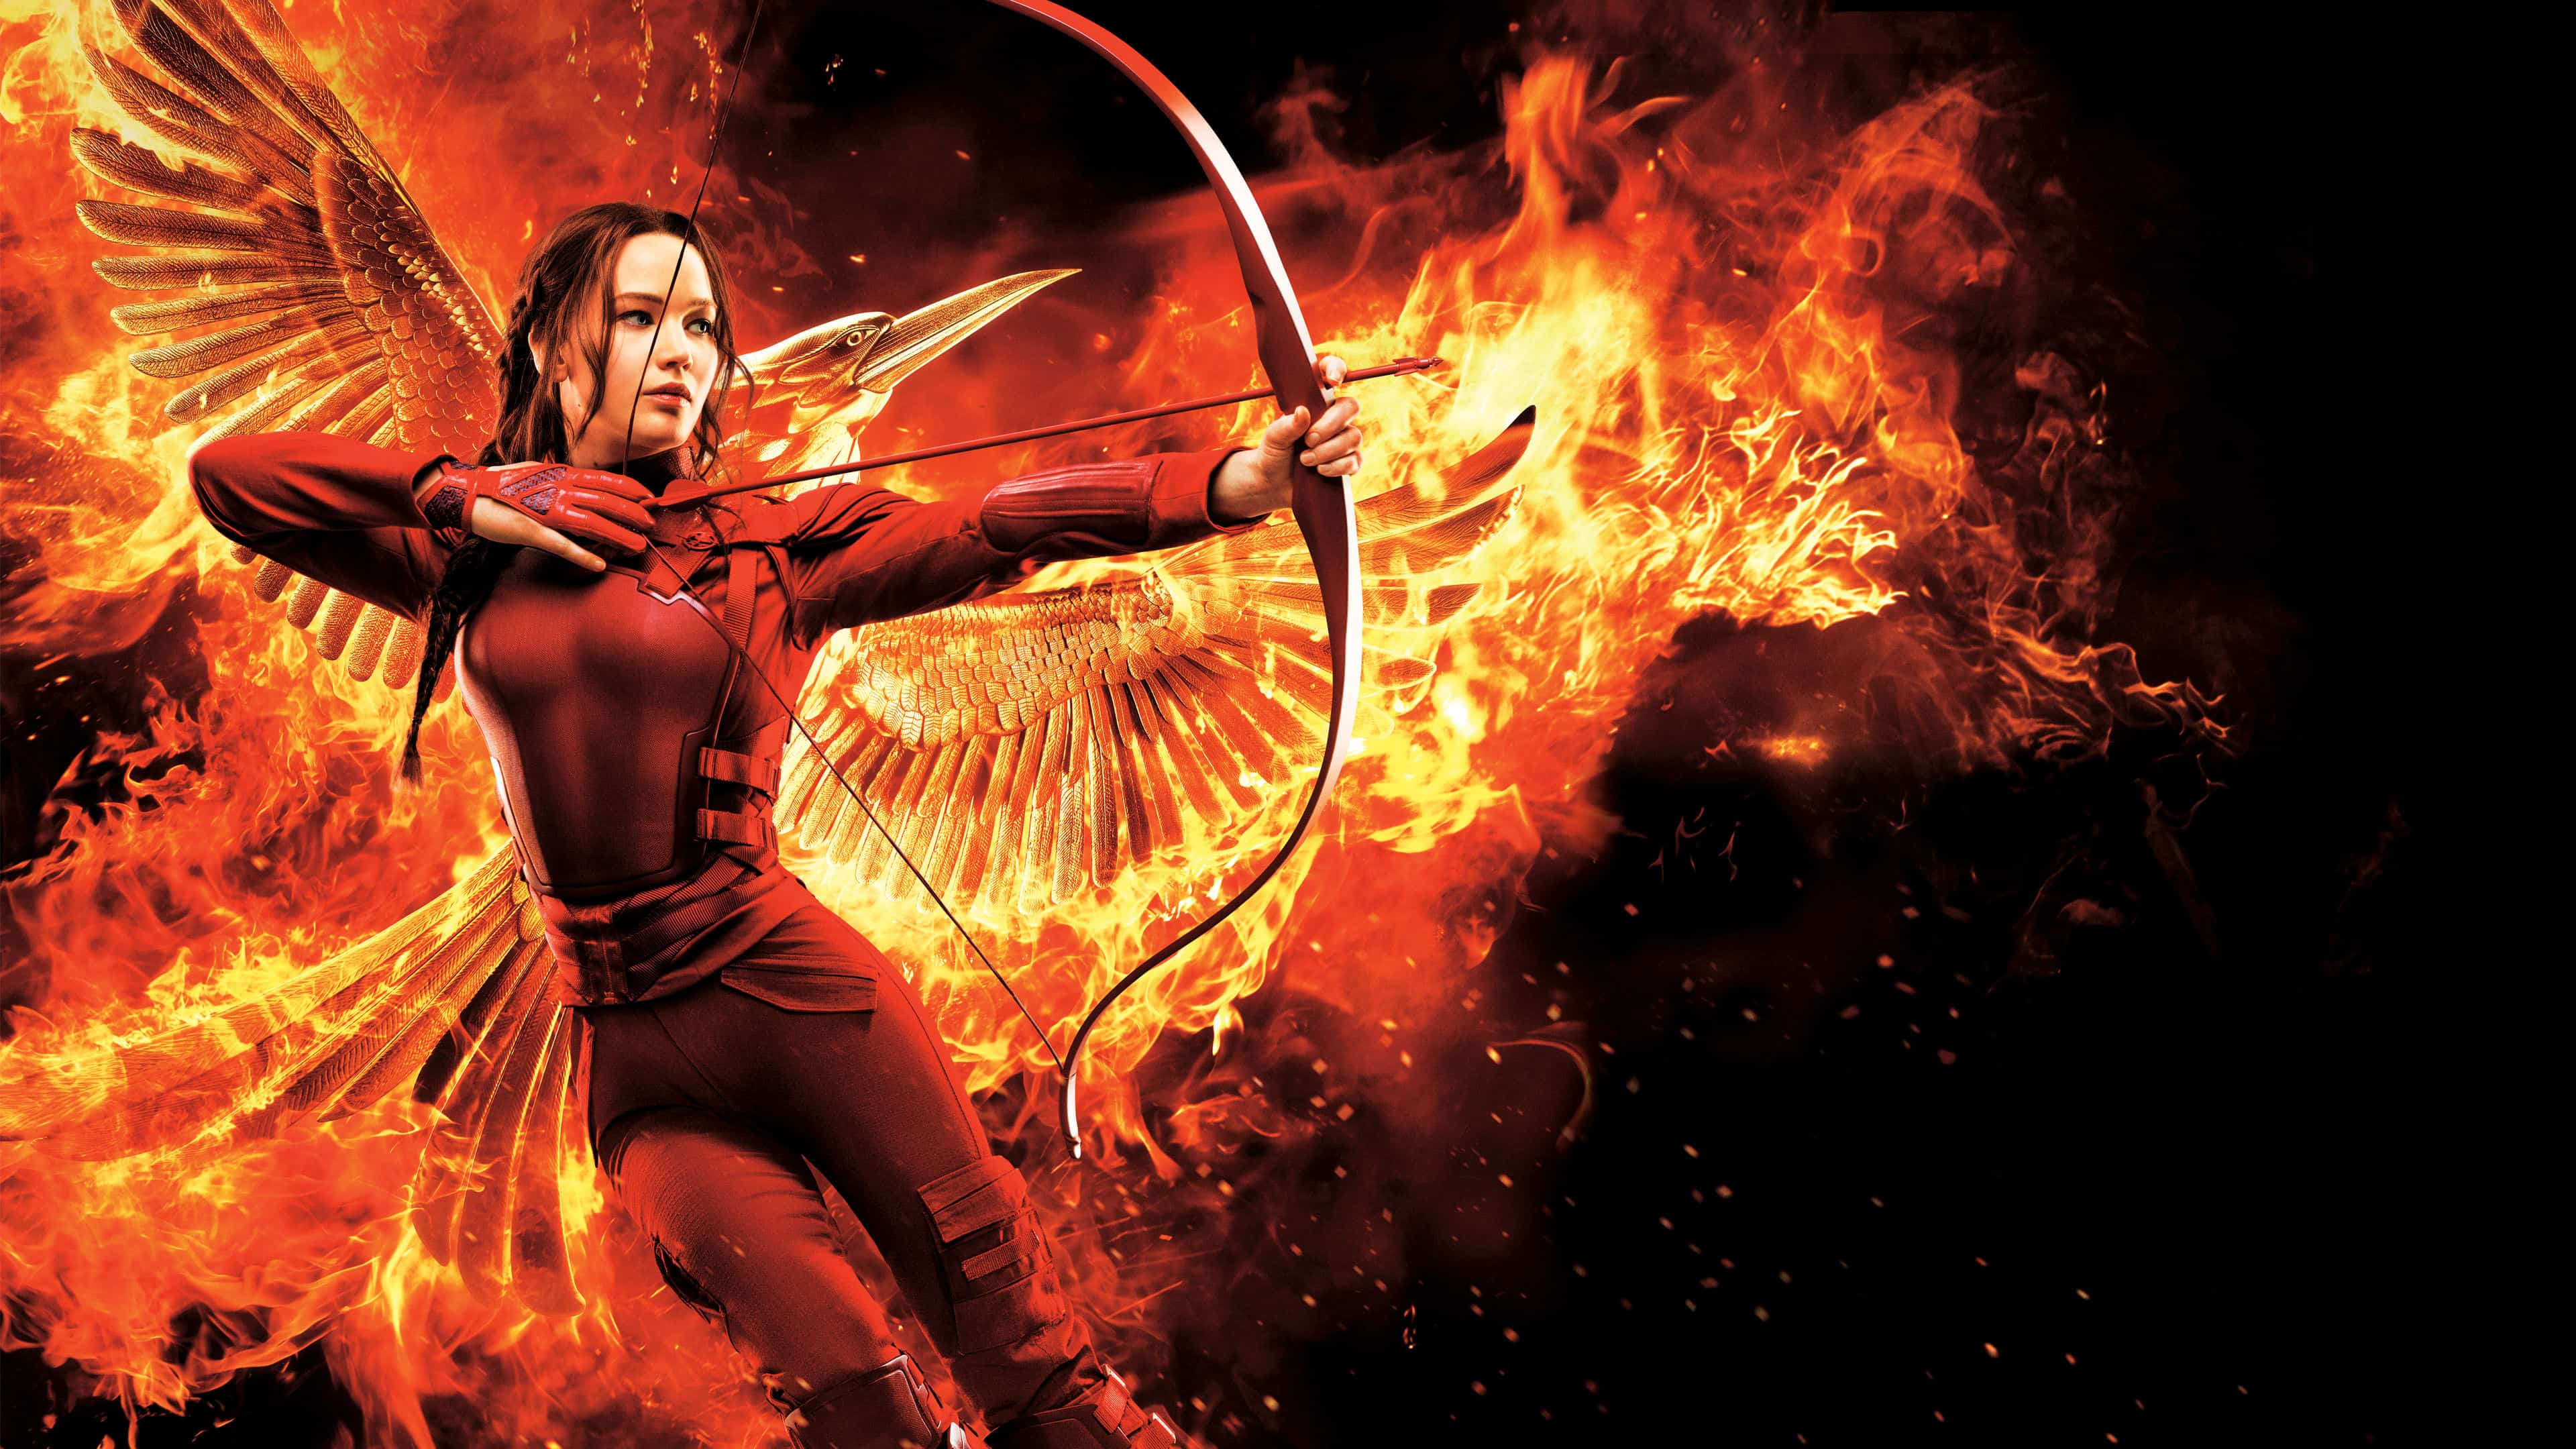 Fall Desktop Wallpaper Hunger Games Mockingjay Part 2 Uhd 4k Wallpaper Pixelz